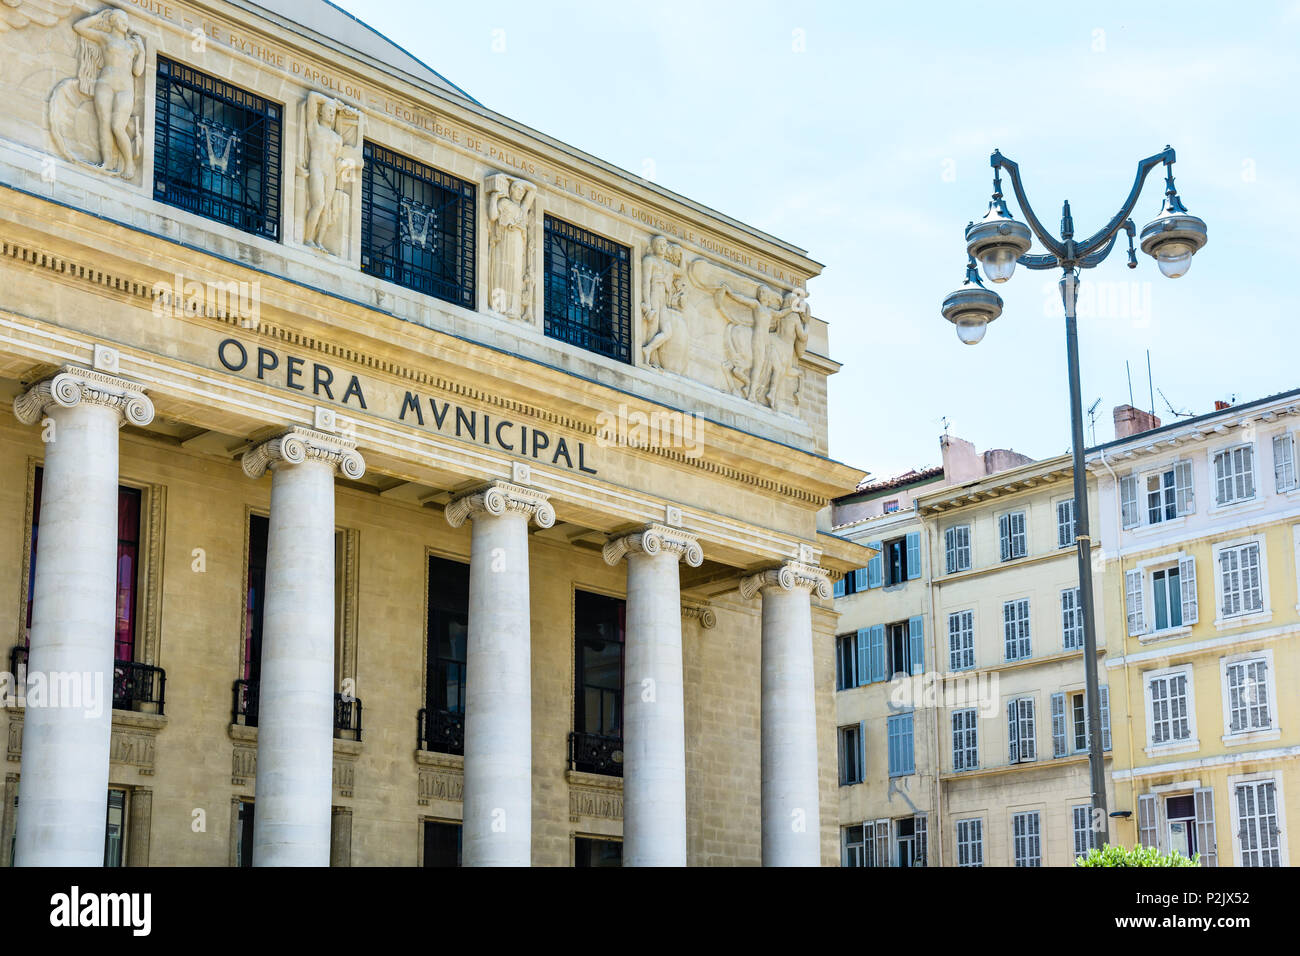 View of the facade of the municipal opera of Marseille with neoclassical-style peristyle topped by an Art Deco pediment. - Stock Image